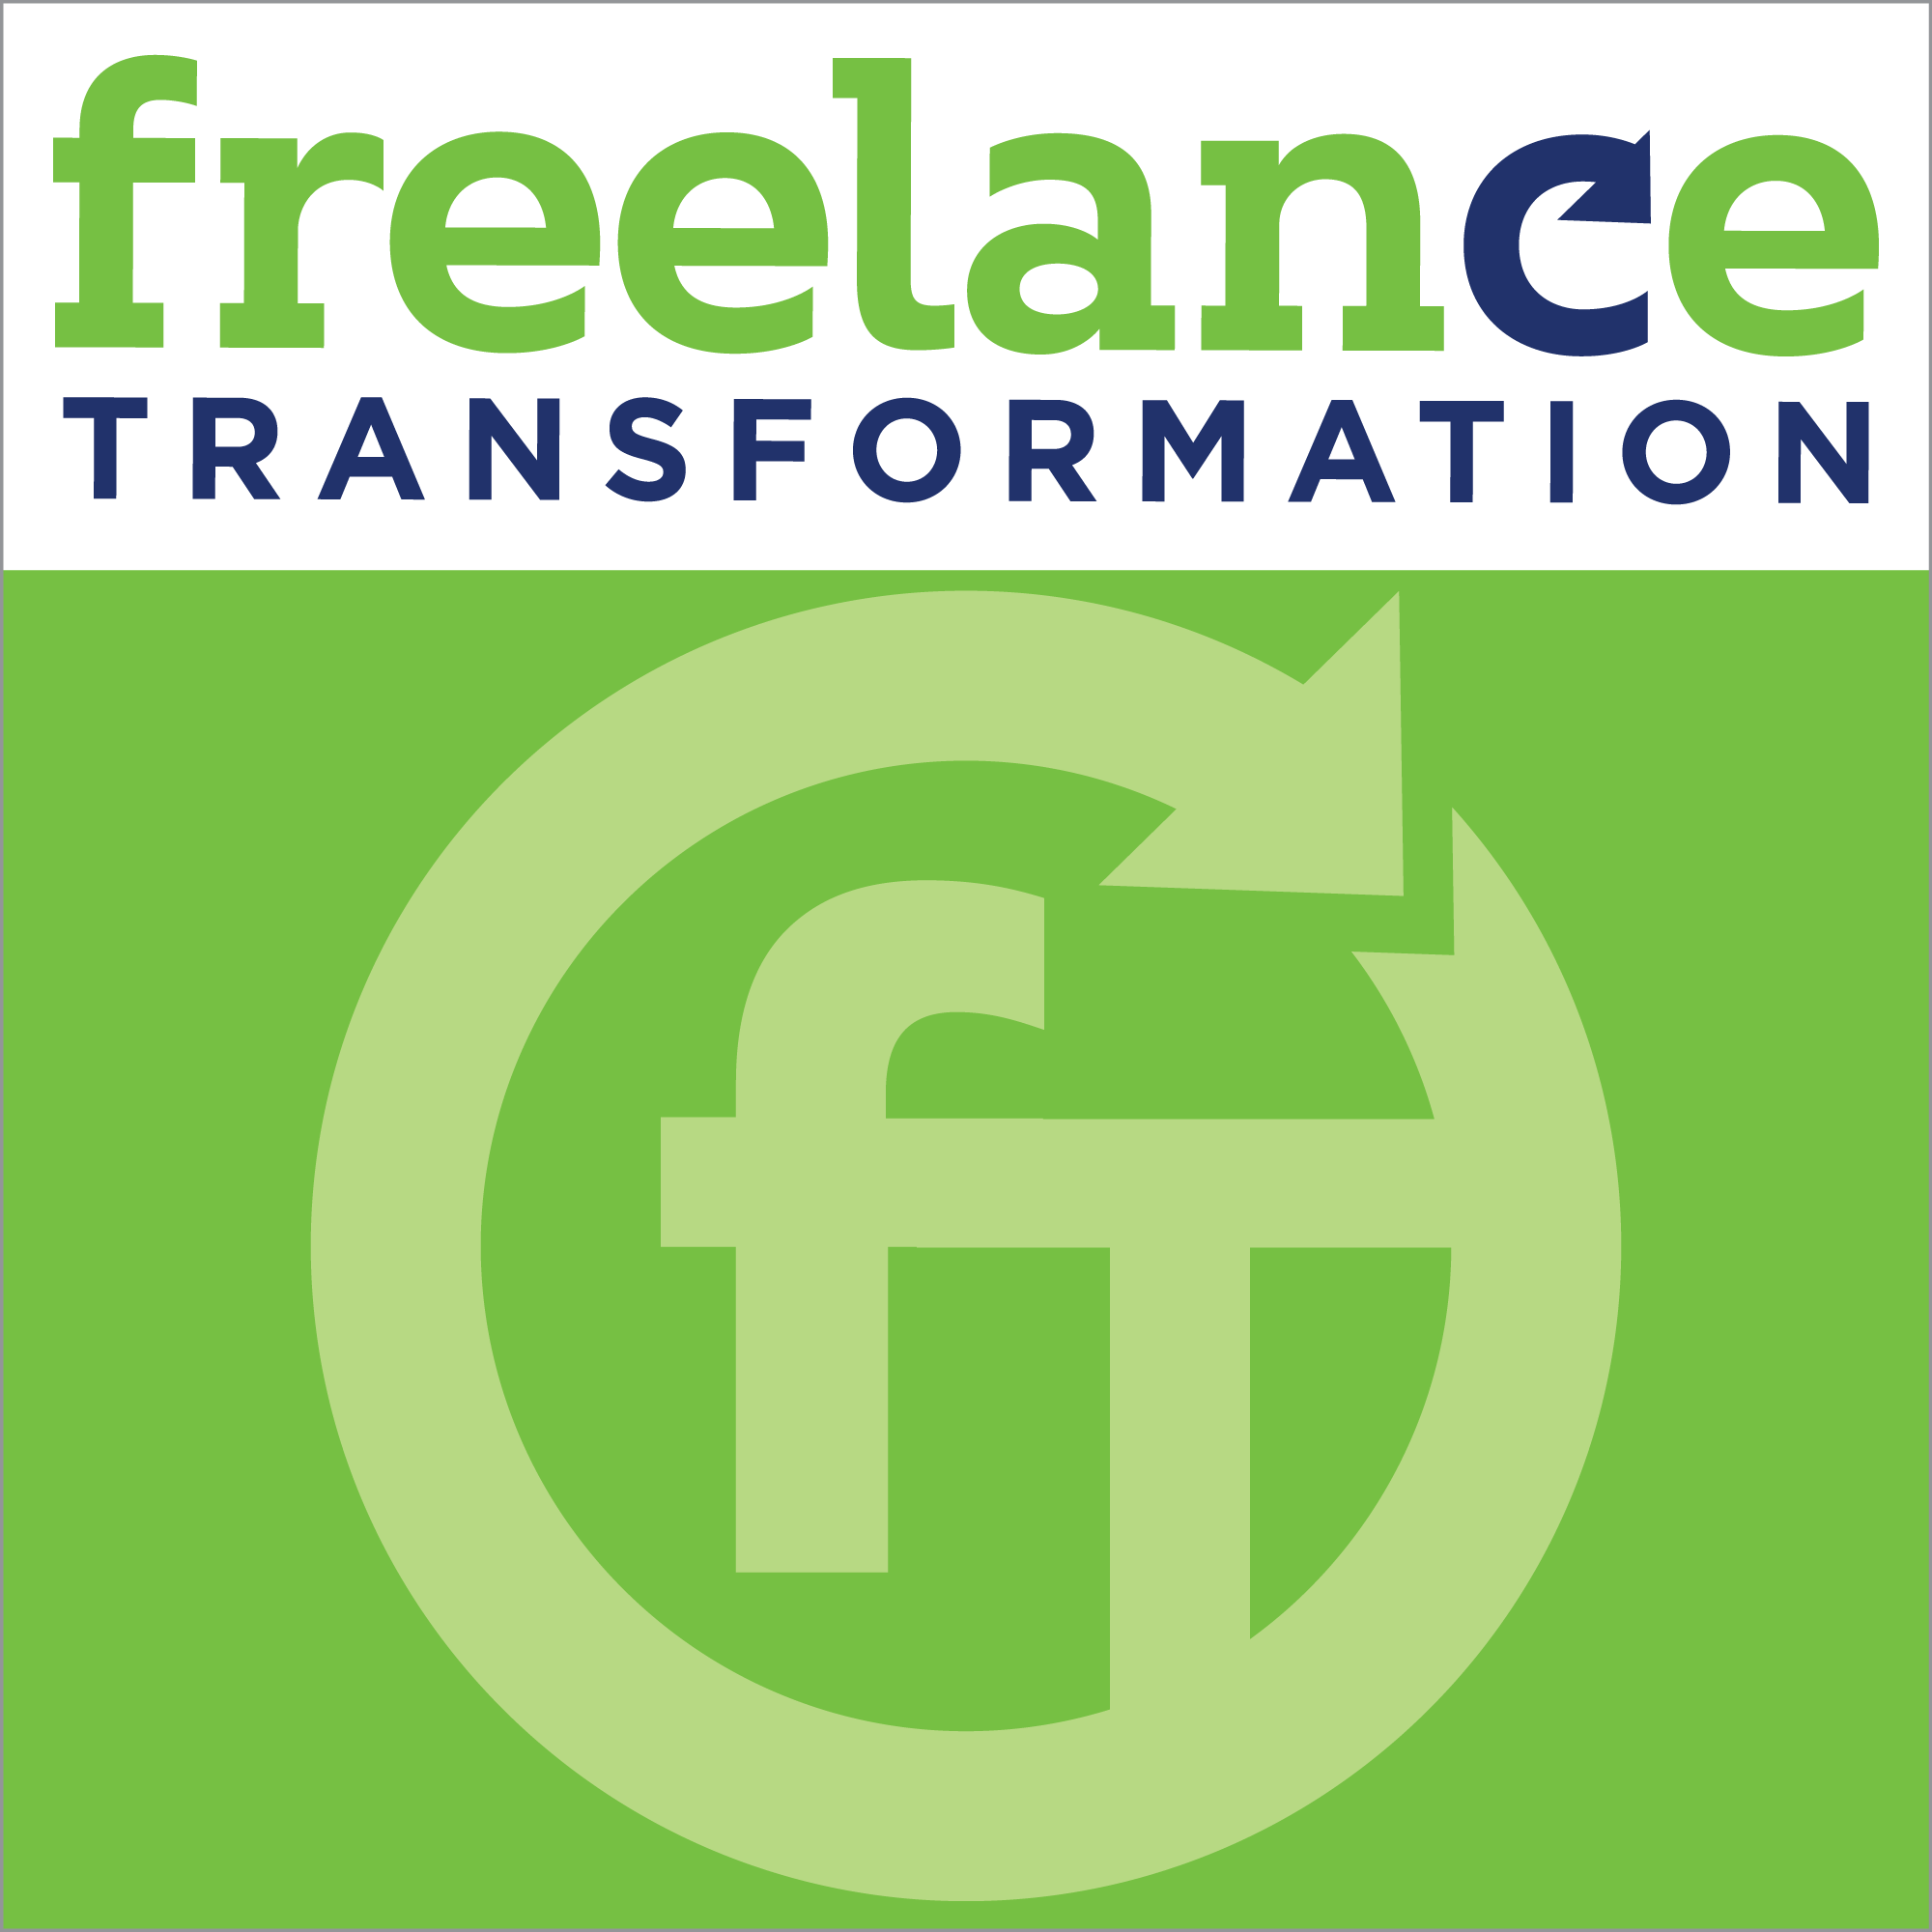 Freelance Transformation: Find higher-paying projects, work less, and get rid of the stress